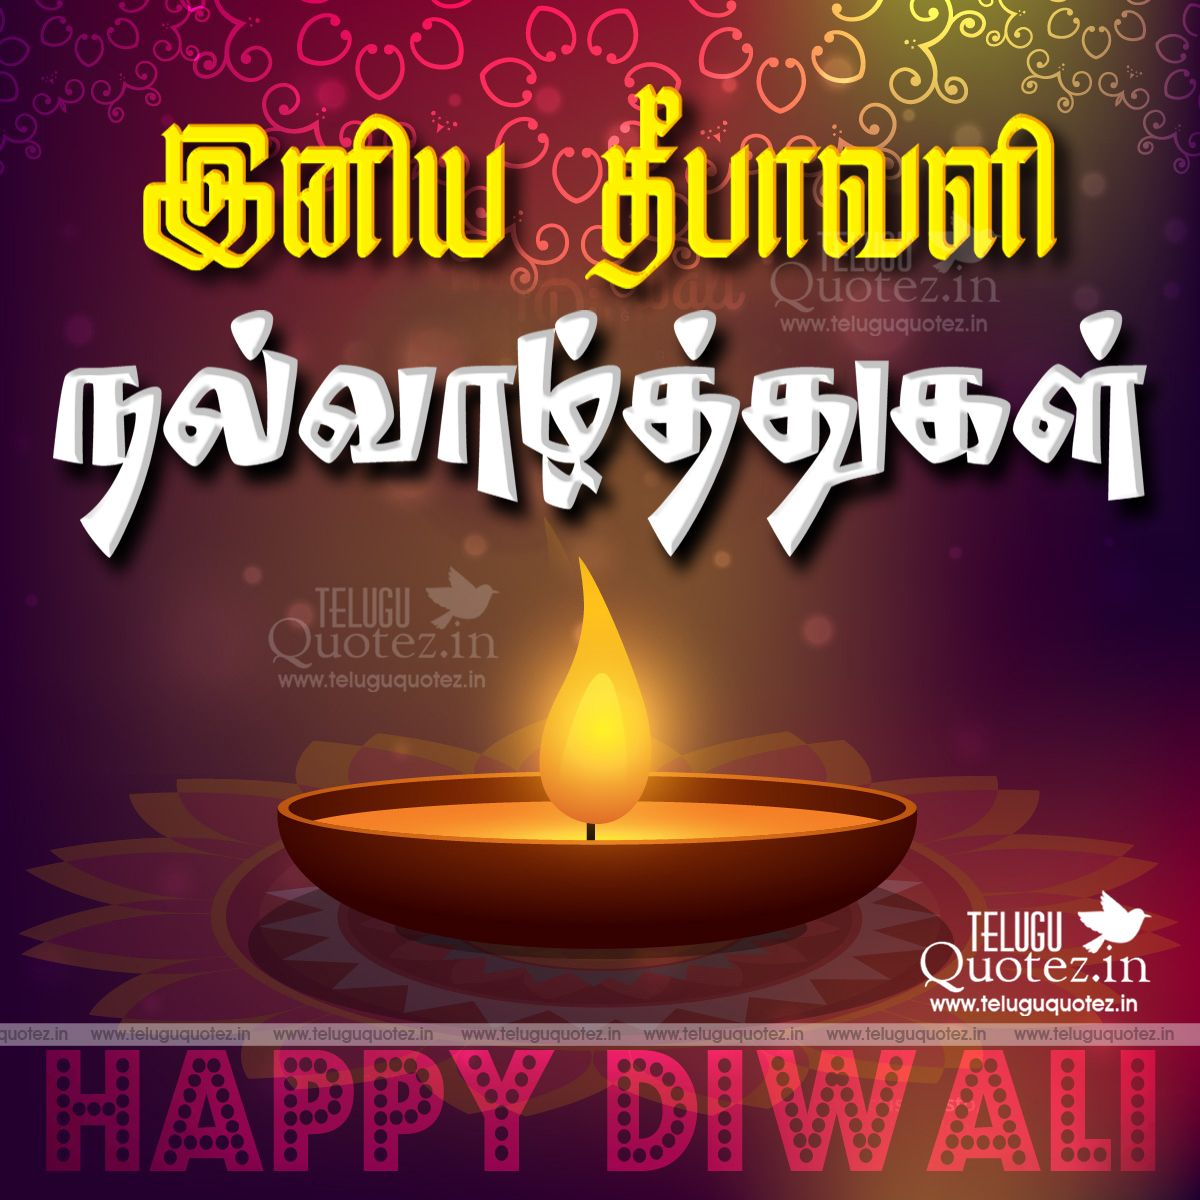 Happy Diwali Tamil Quotes Wisheswish You Happy Diwali Tamil Quotes